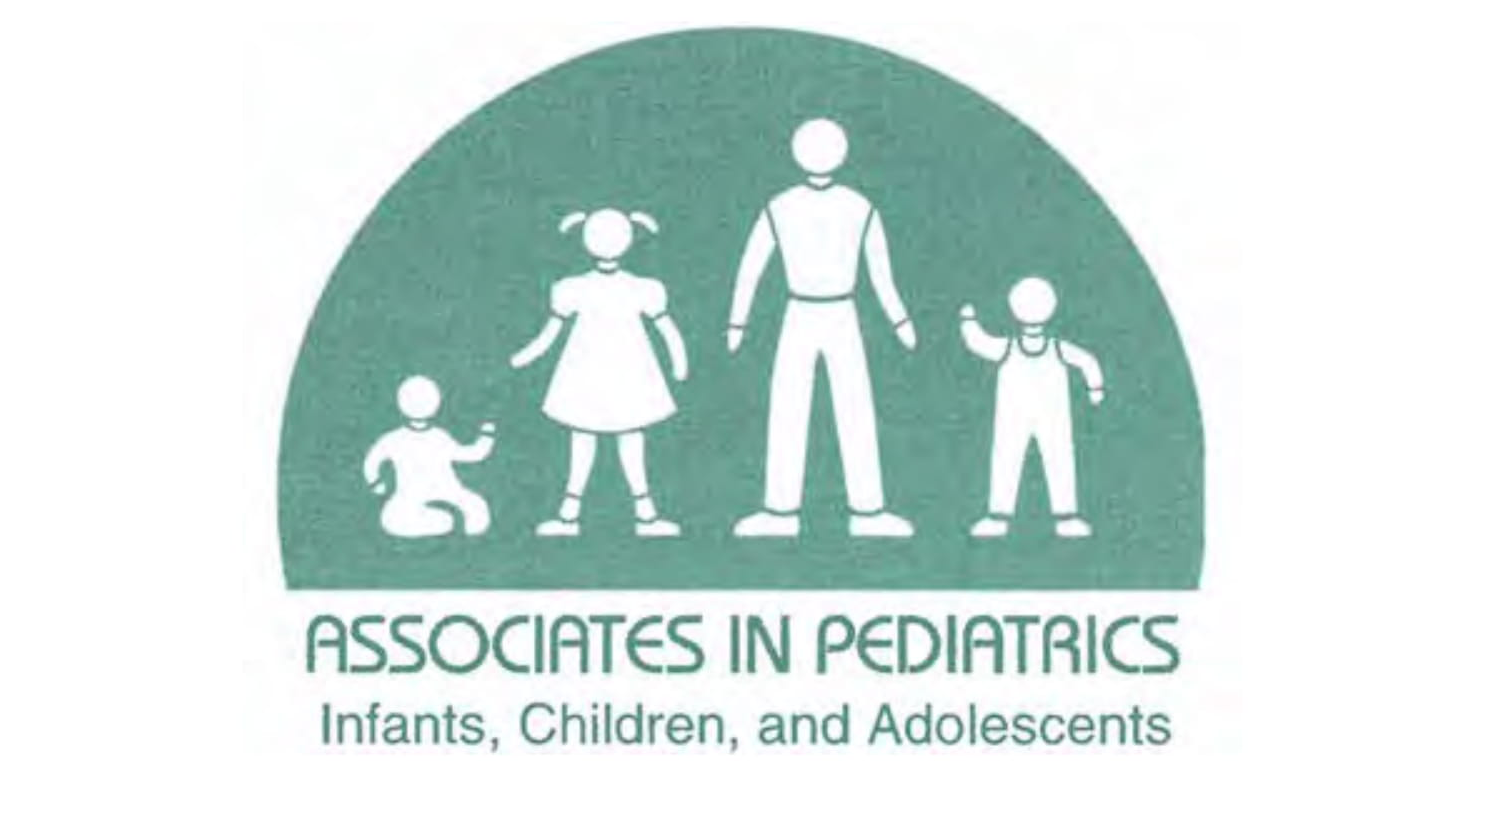 After Hours Pediatrics - Pediatric Partners of Virginia